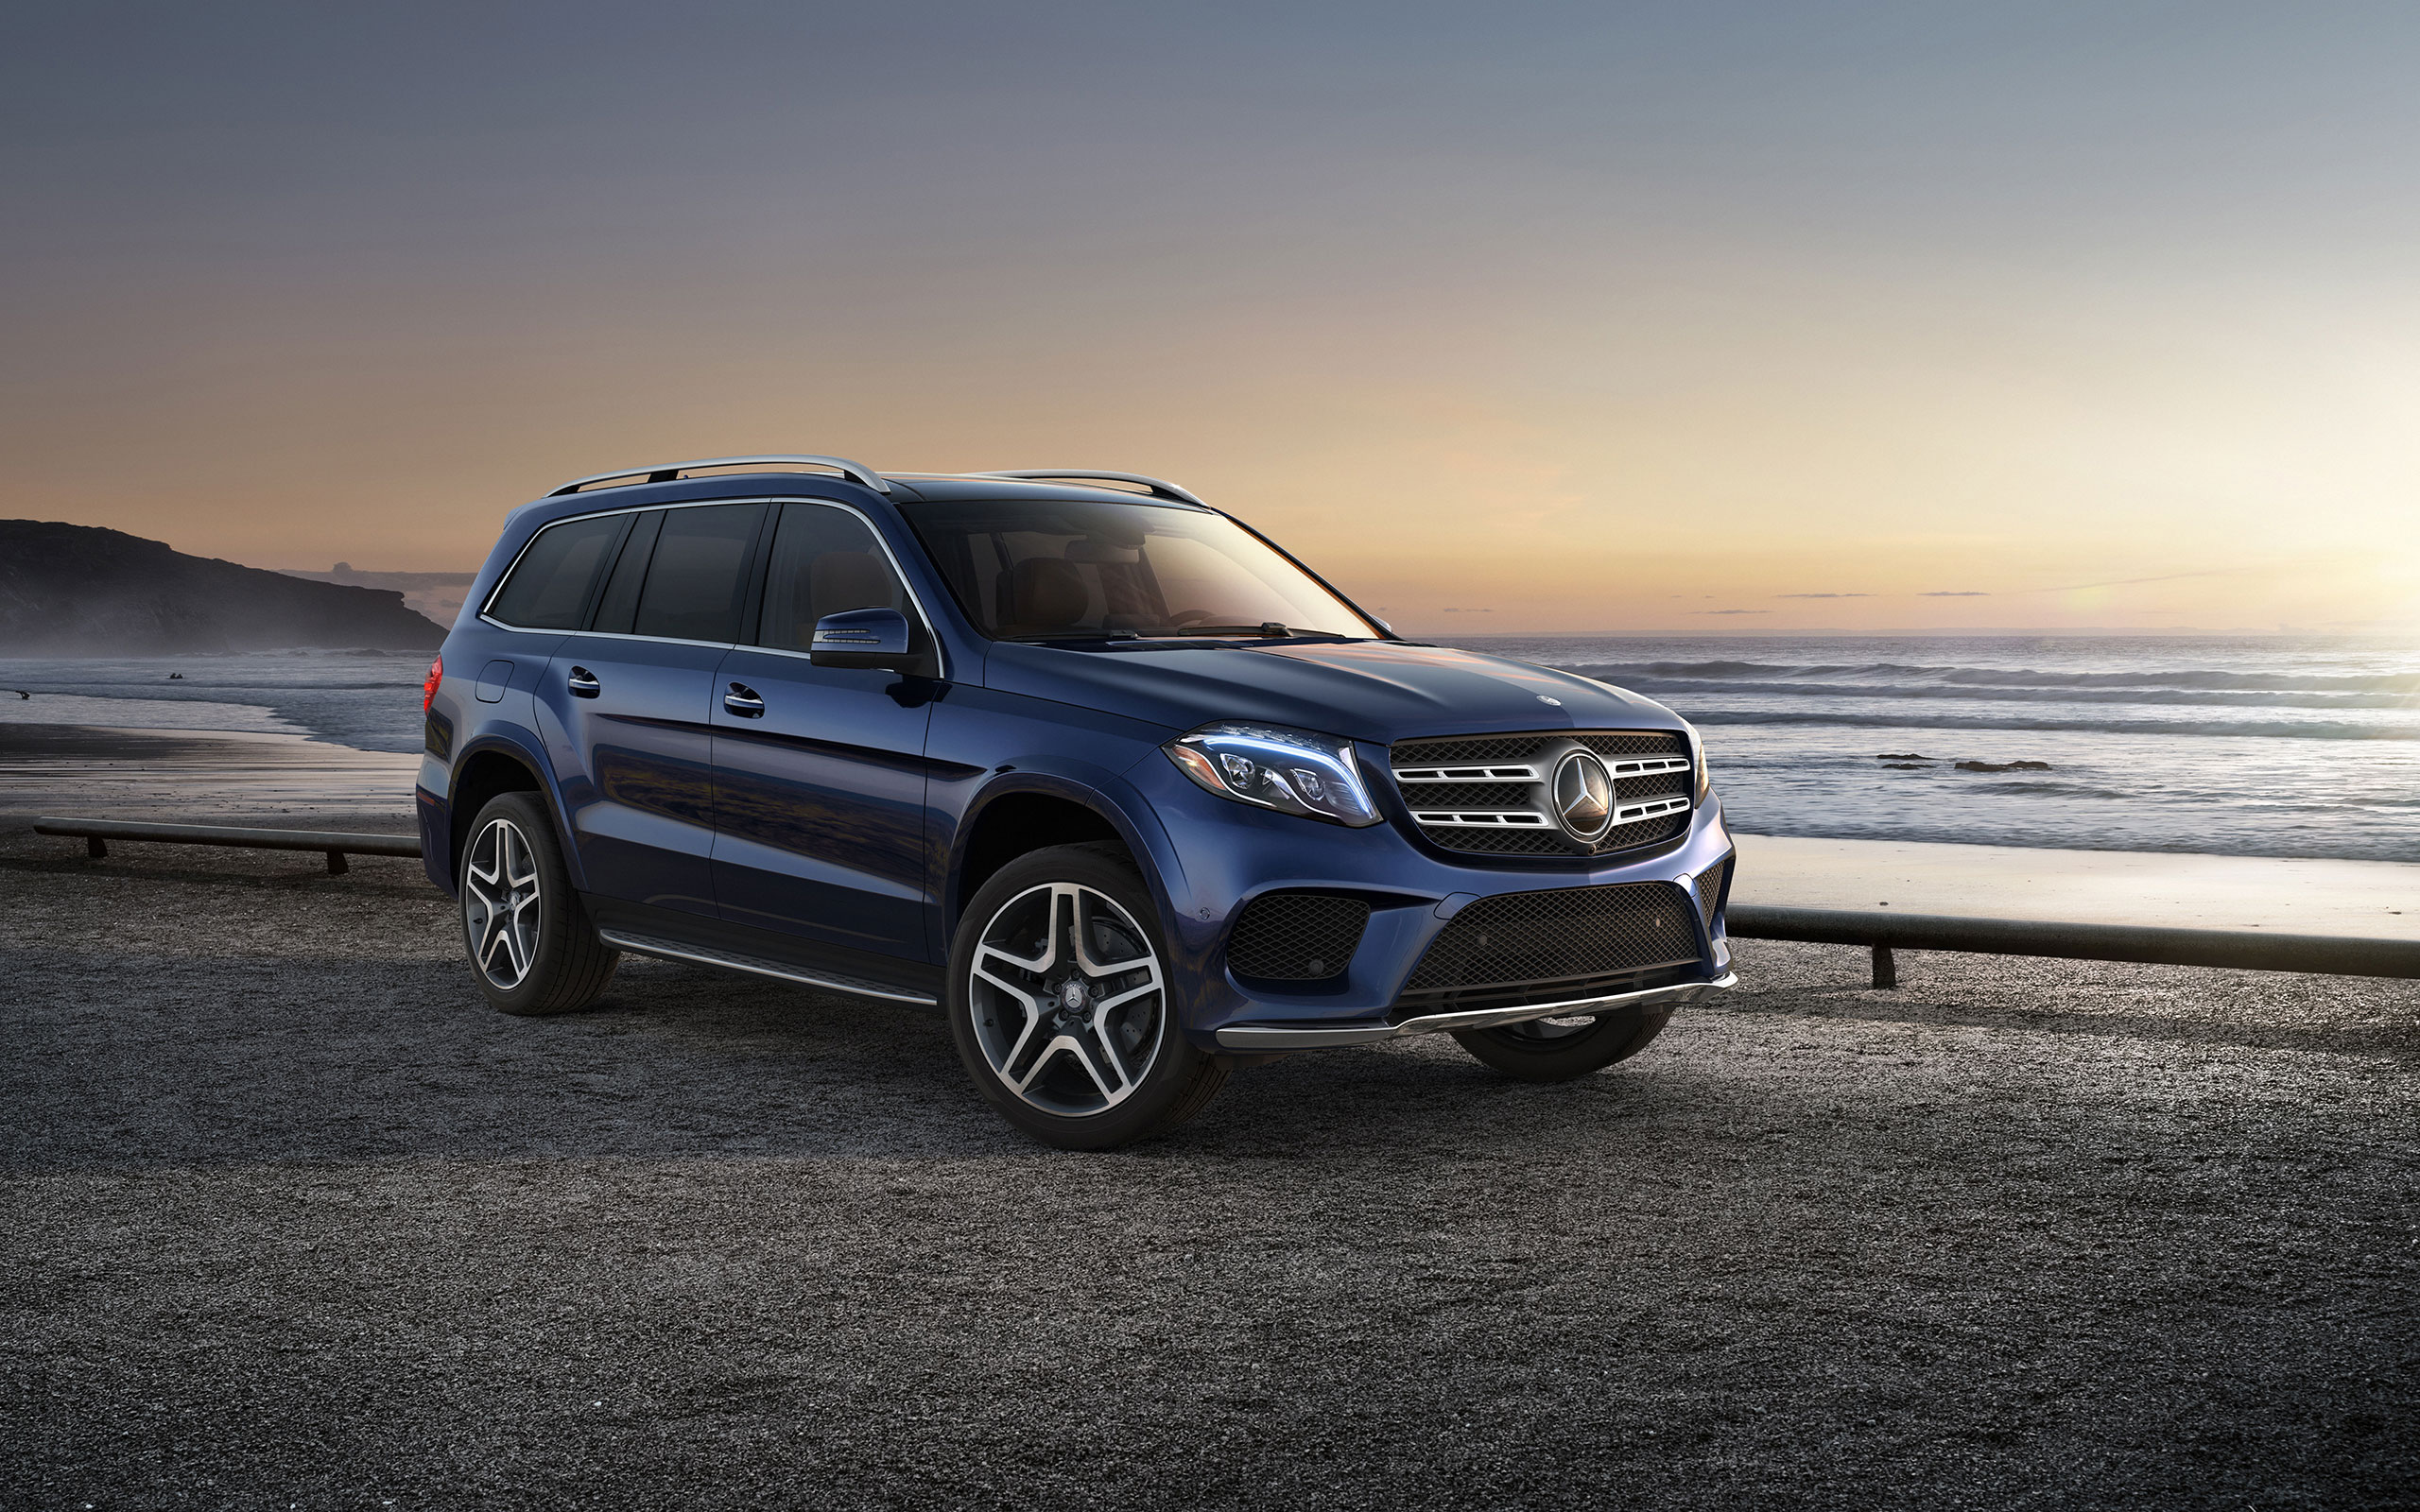 Explaining the mercedes gl suv lineup aristocrat motors for Aristocrat motors mercedes benz